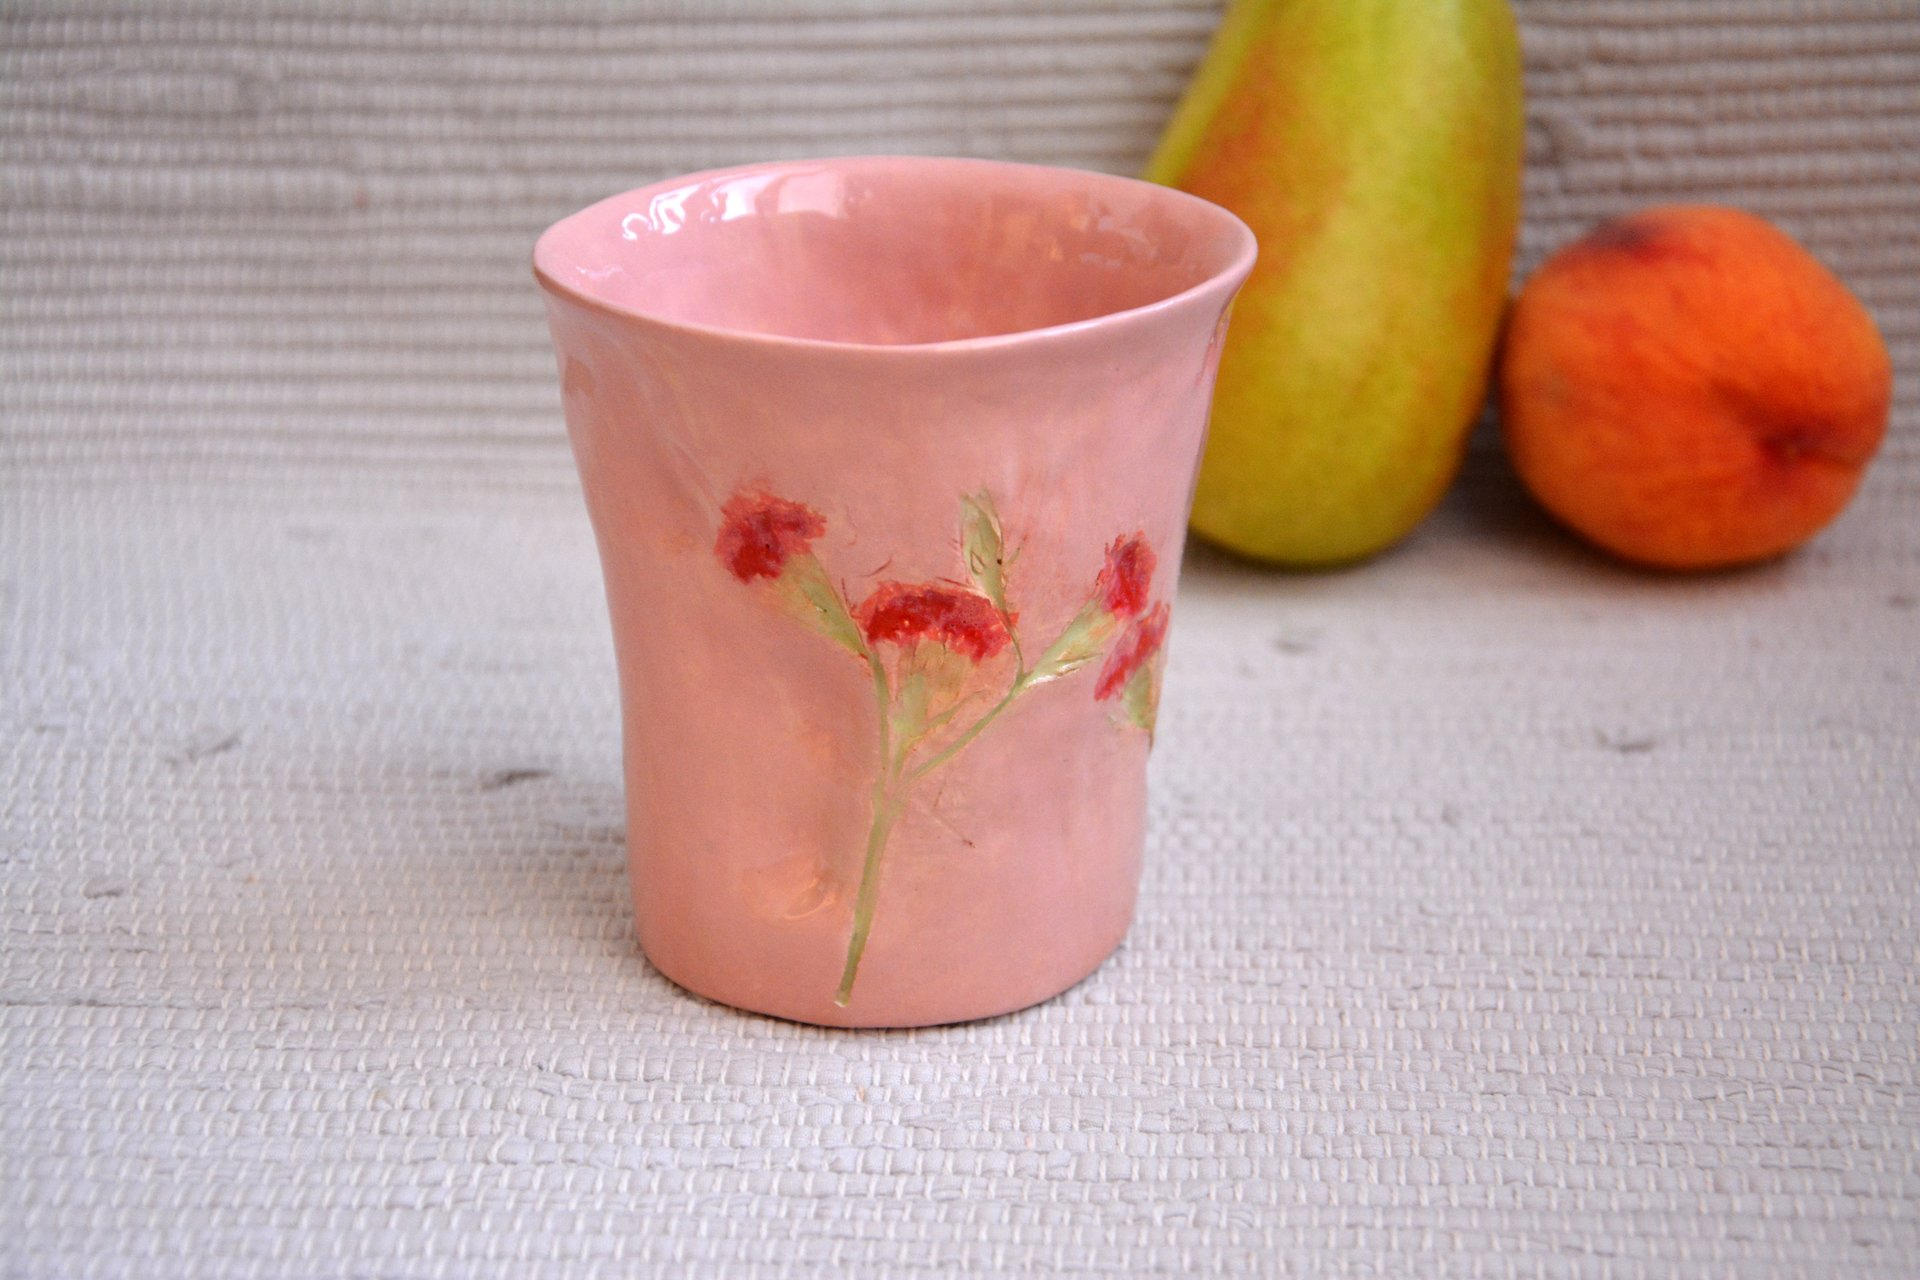 Pink glass The Carnation - Cups, glasses, mugs, height - 11 cm, diameter at the top - 10 cm, diameter on the bottom - 7 cm., photo 2 of 3.